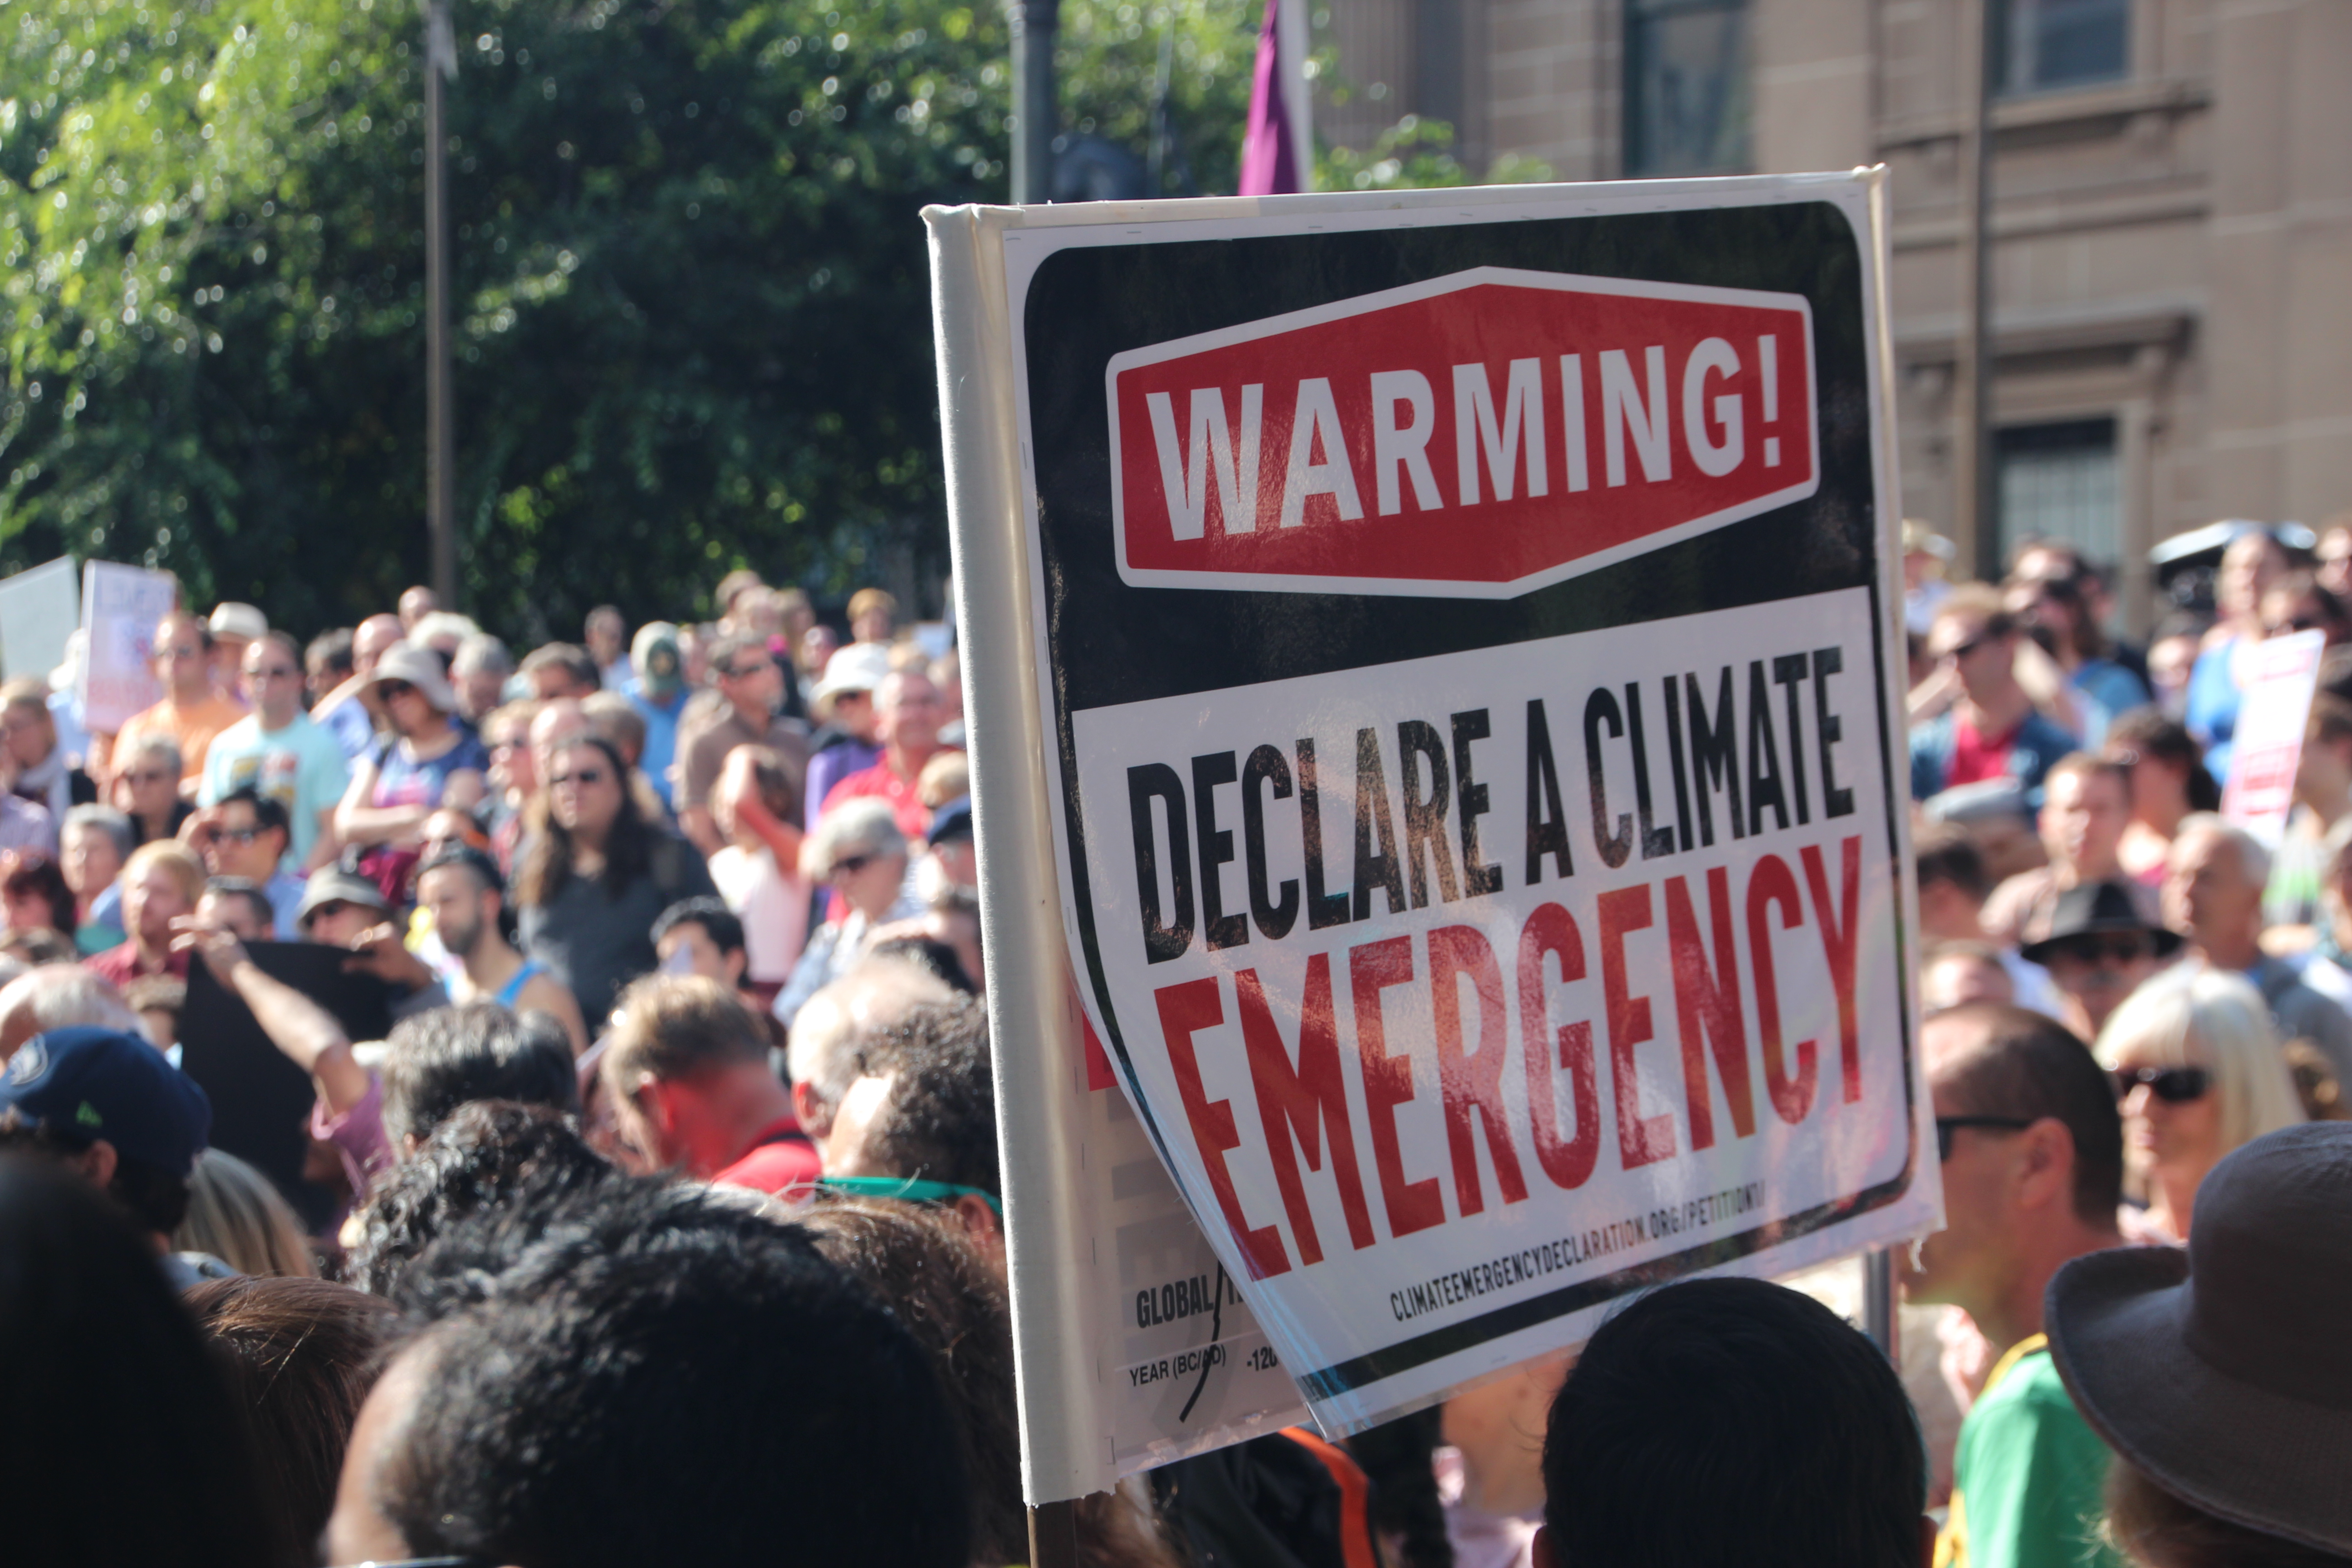 Declare a climate emergency - Melbourne #MarchforScience on #Earthday